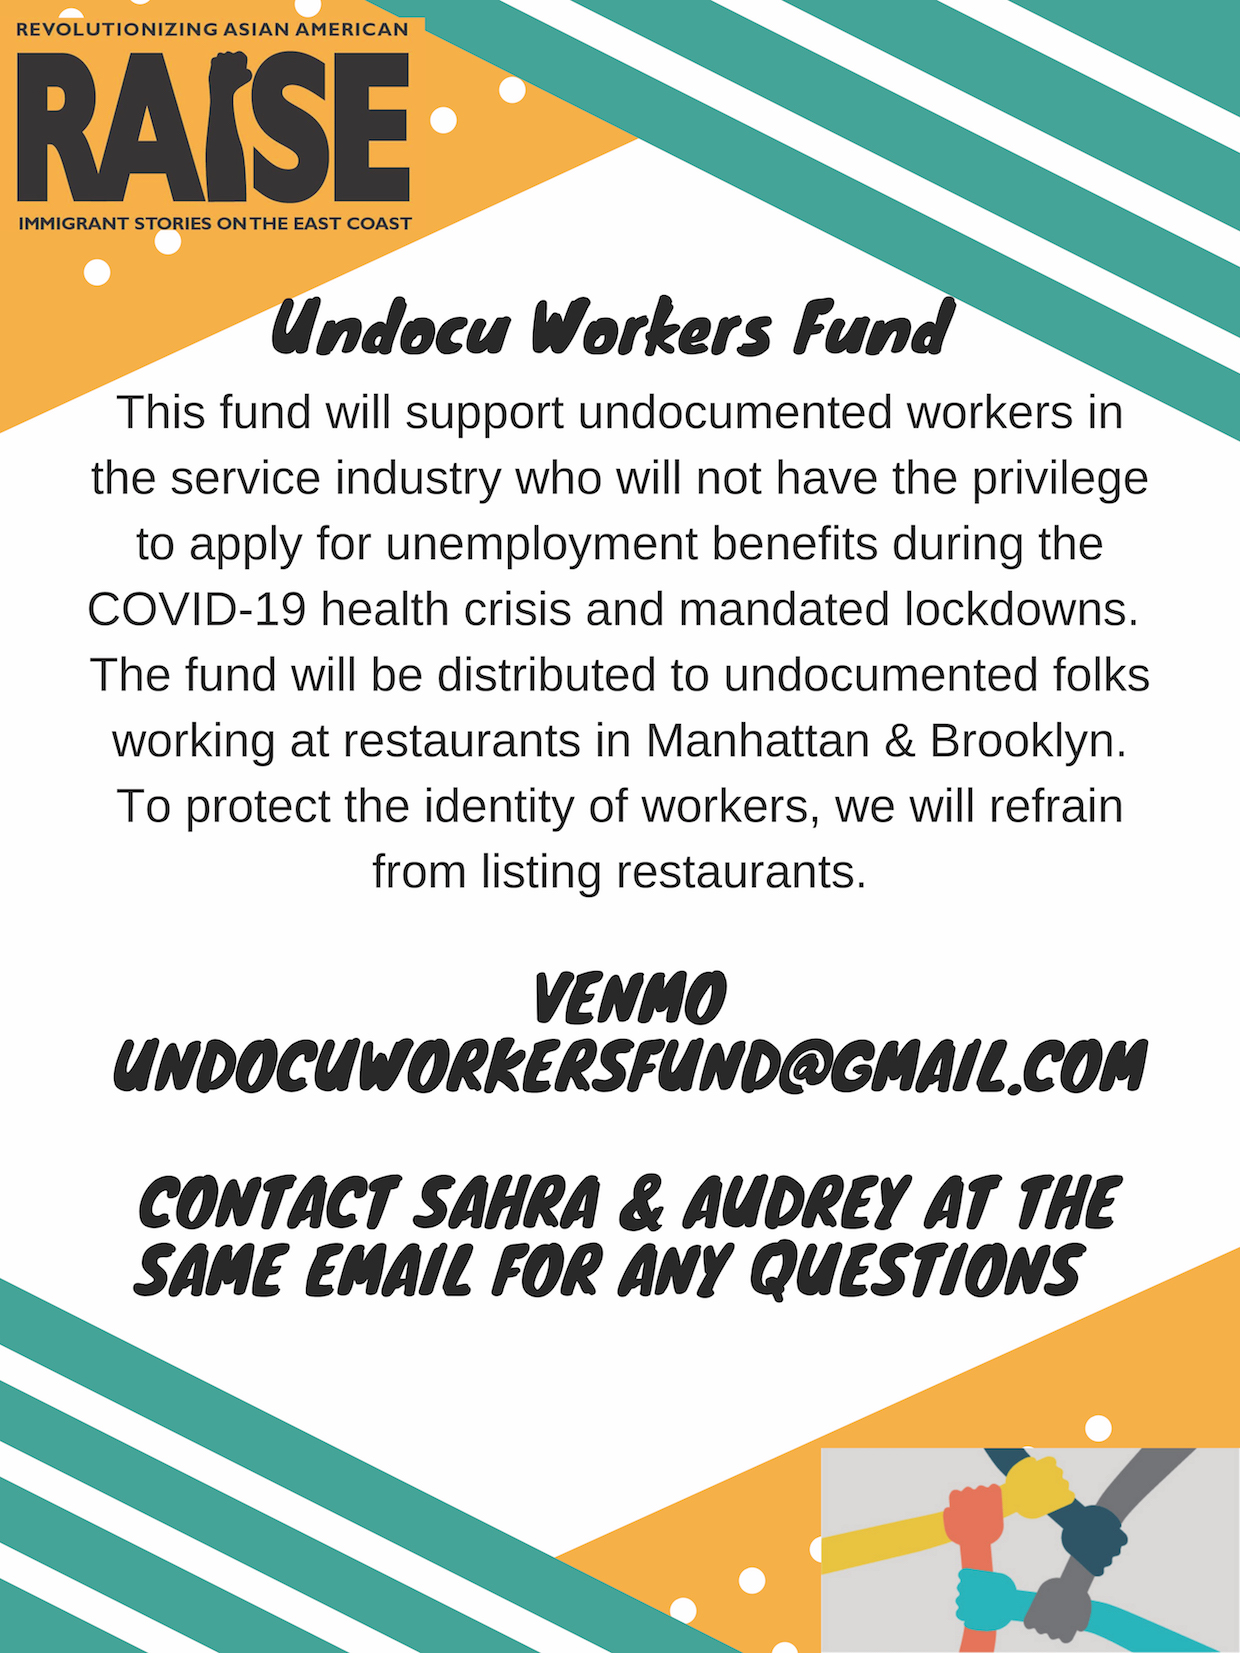 Undocu Workers Fund